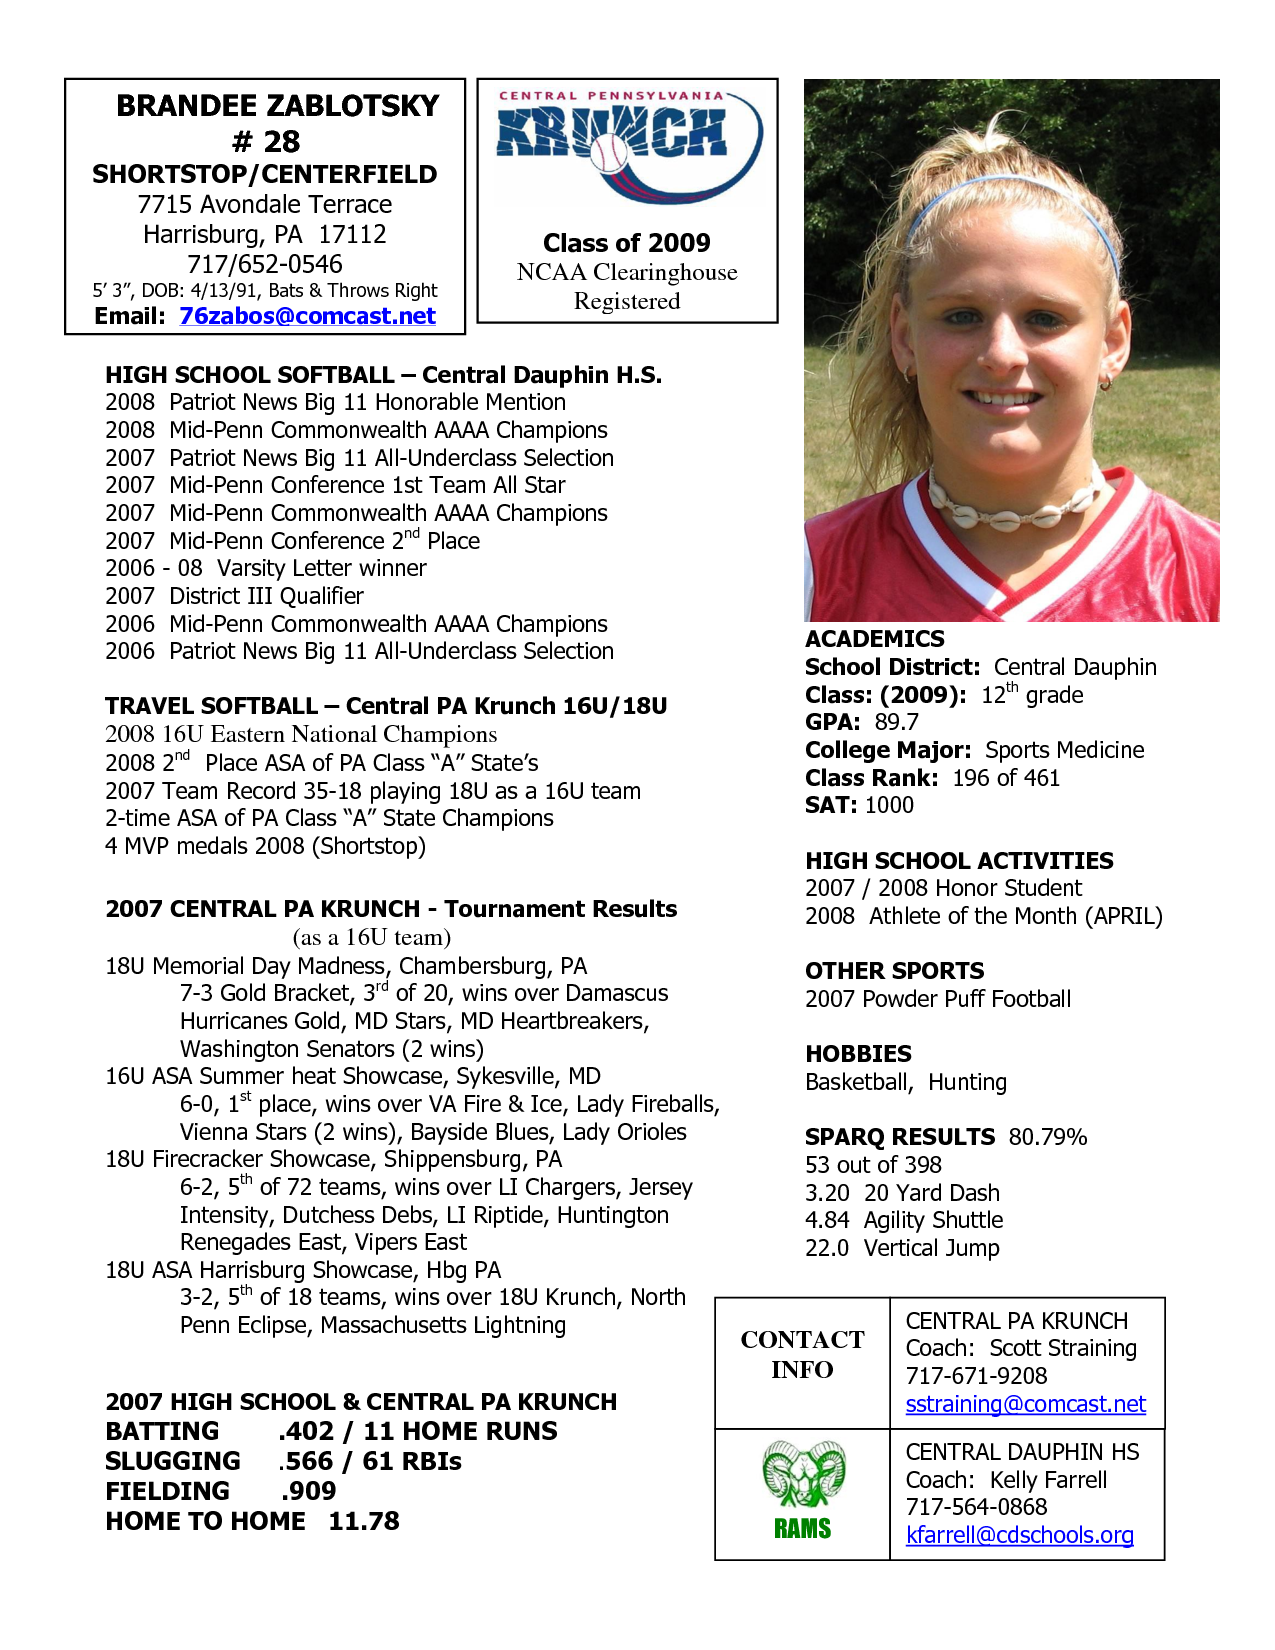 Softball Profile Sample Player Central Pennsylvania Krunch